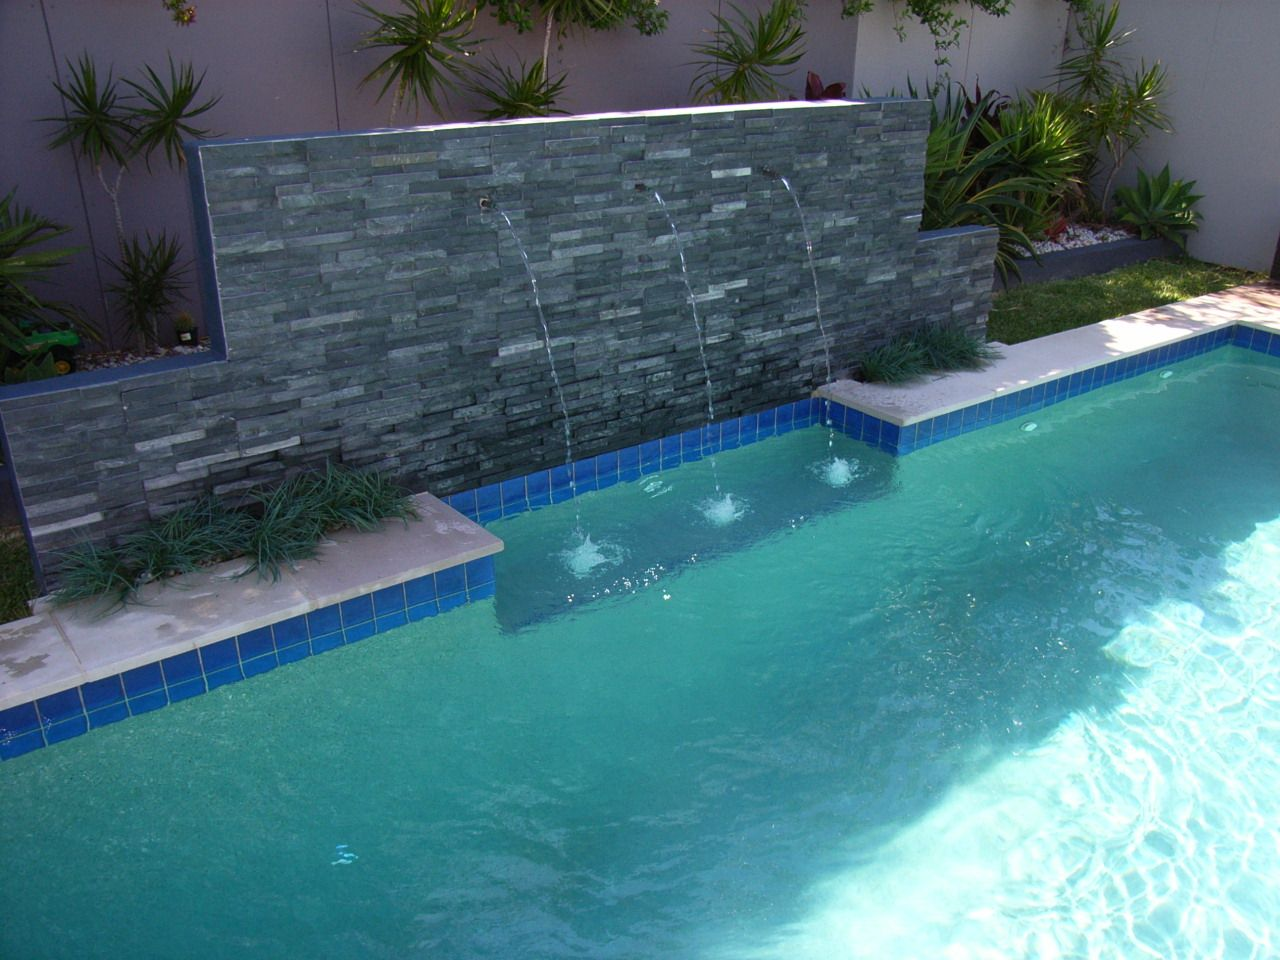 Stacked stone water feature - Stone Pool Stack Stone Feature Wall With Spouts